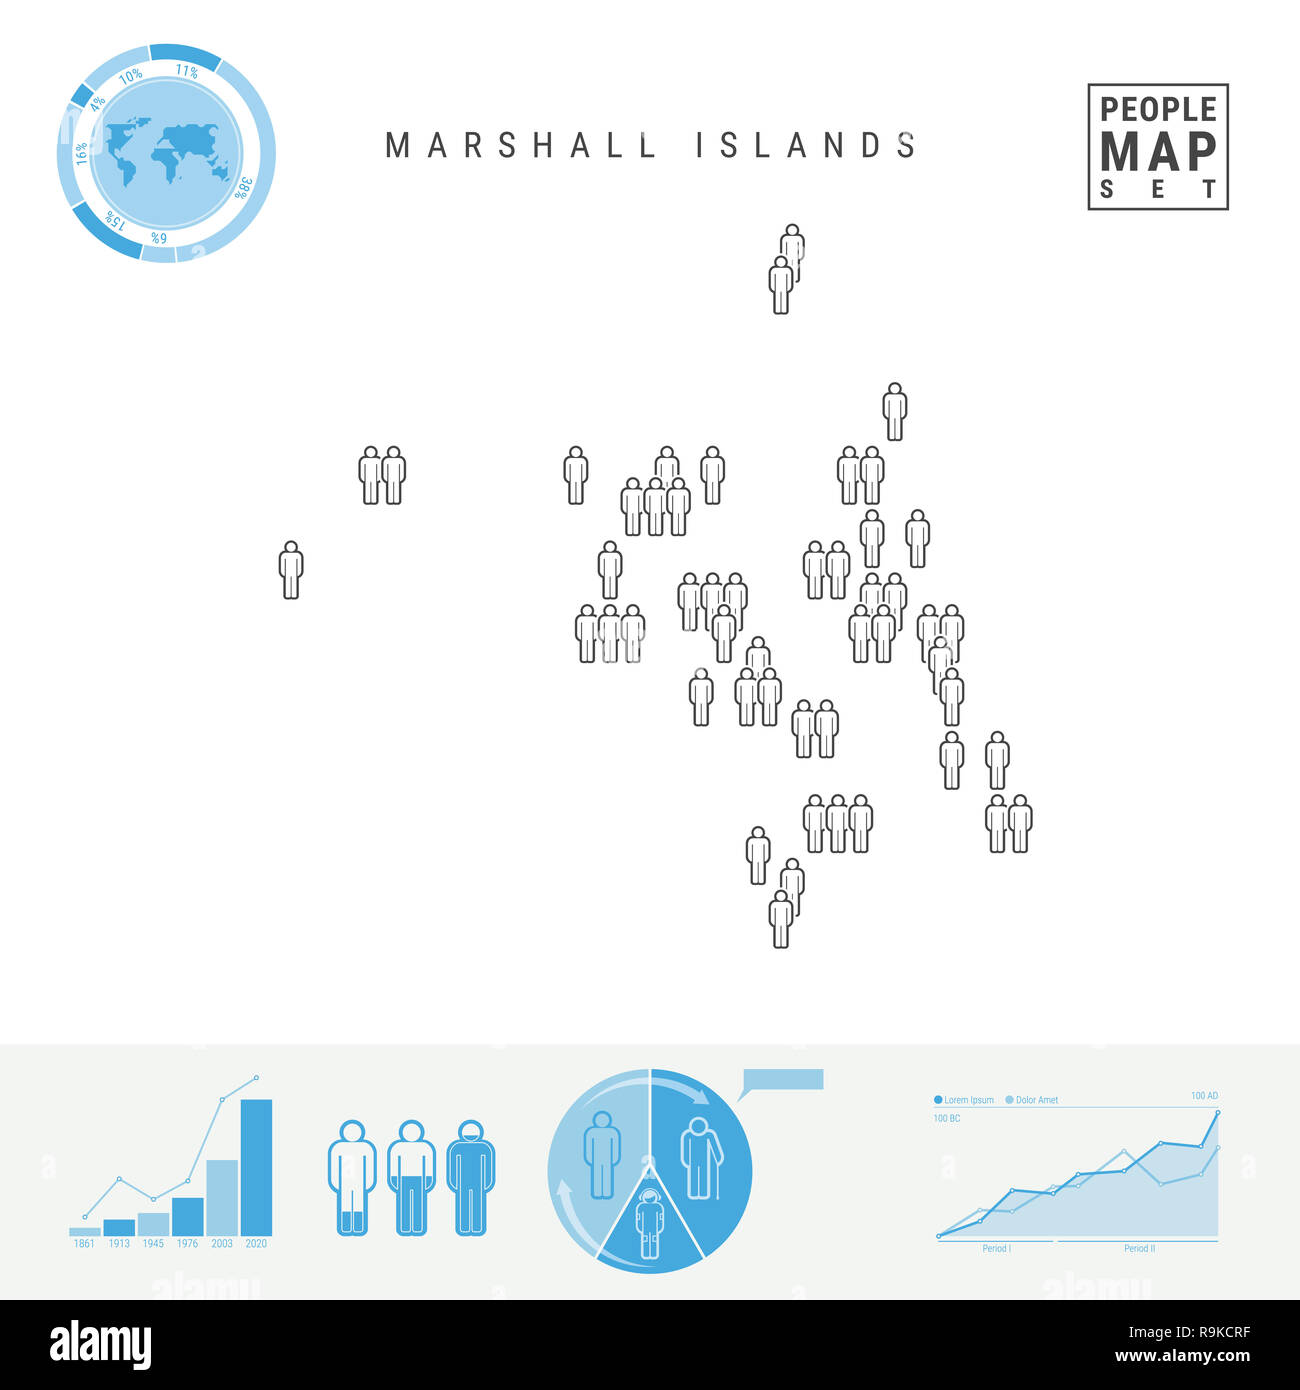 Marshall Islands People Icon Map. People Crowd in the Shape ...